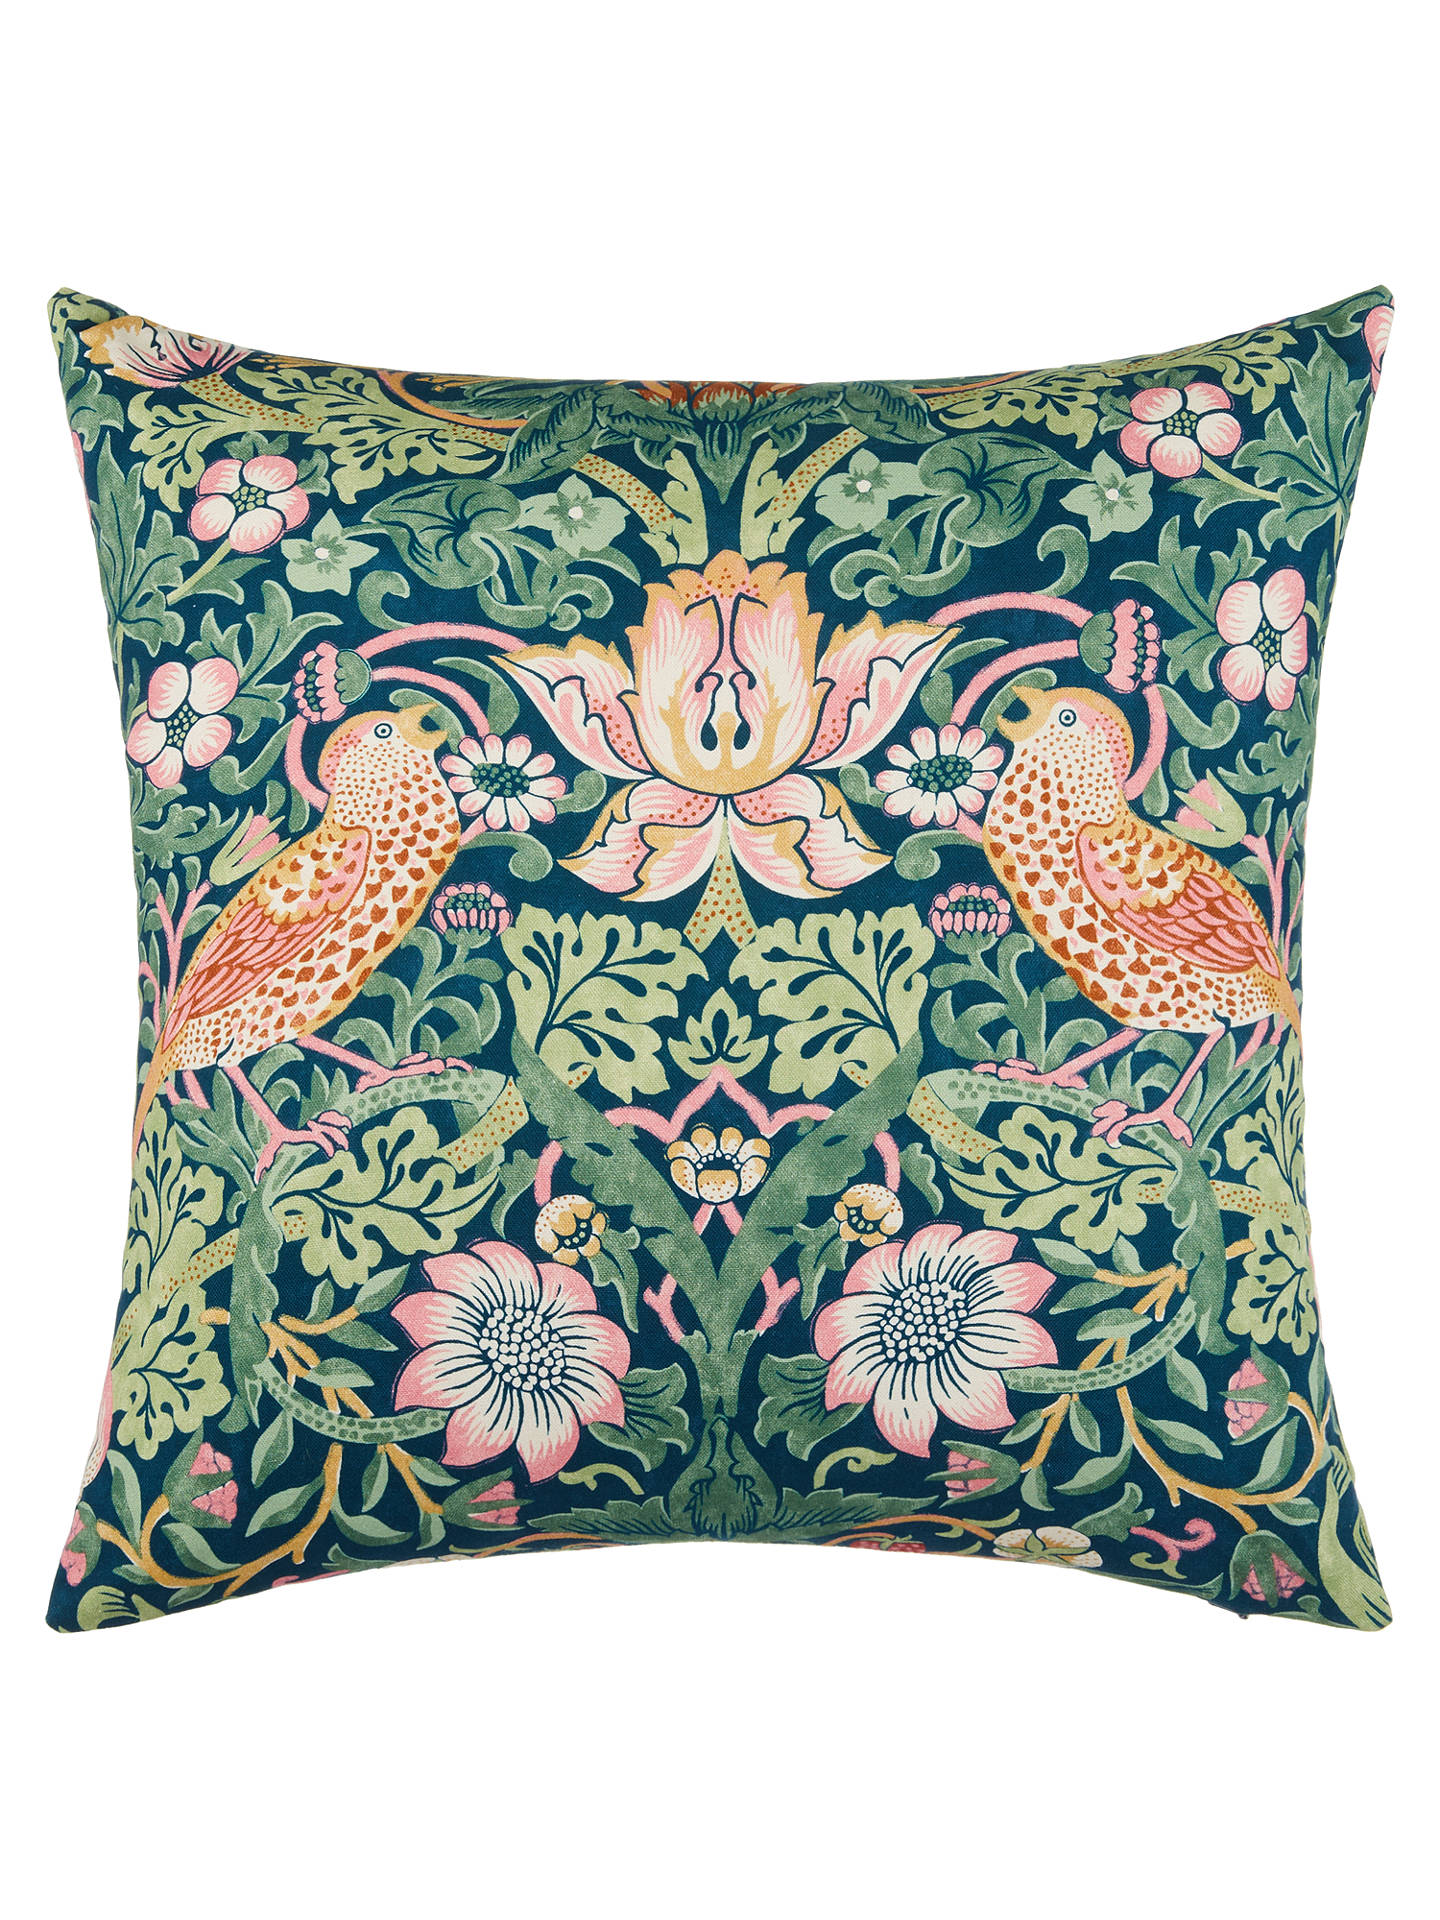 Buy Morris & Co. Strawberry Thief Cushion, Bright Online at johnlewis.com